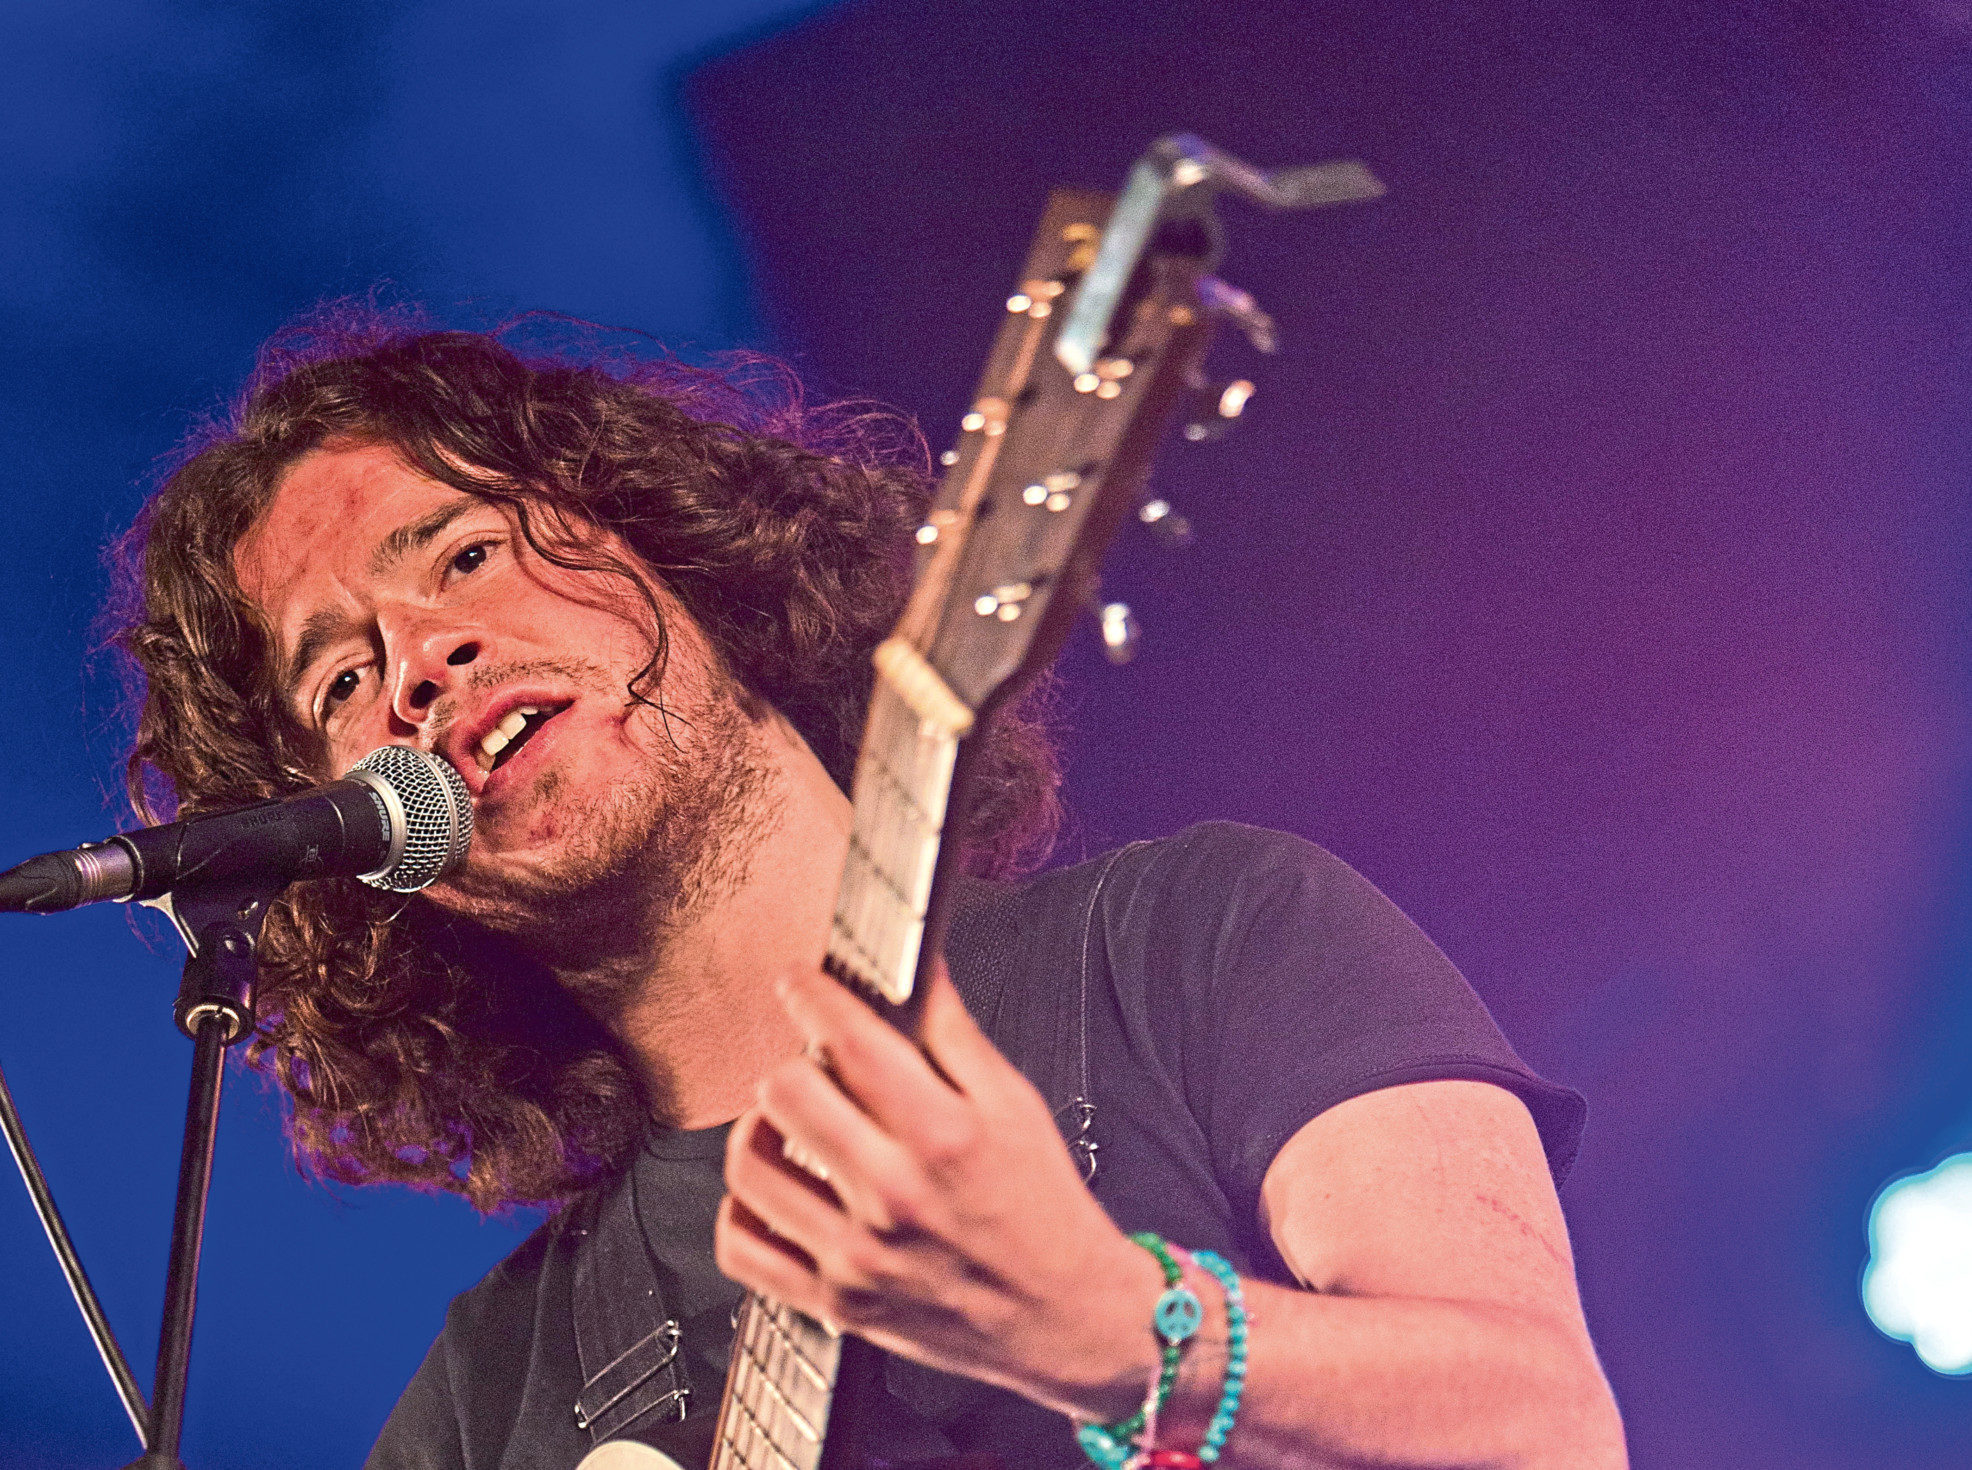 The Kyle Falconer band performs at Carnival 56 in Dundee last year